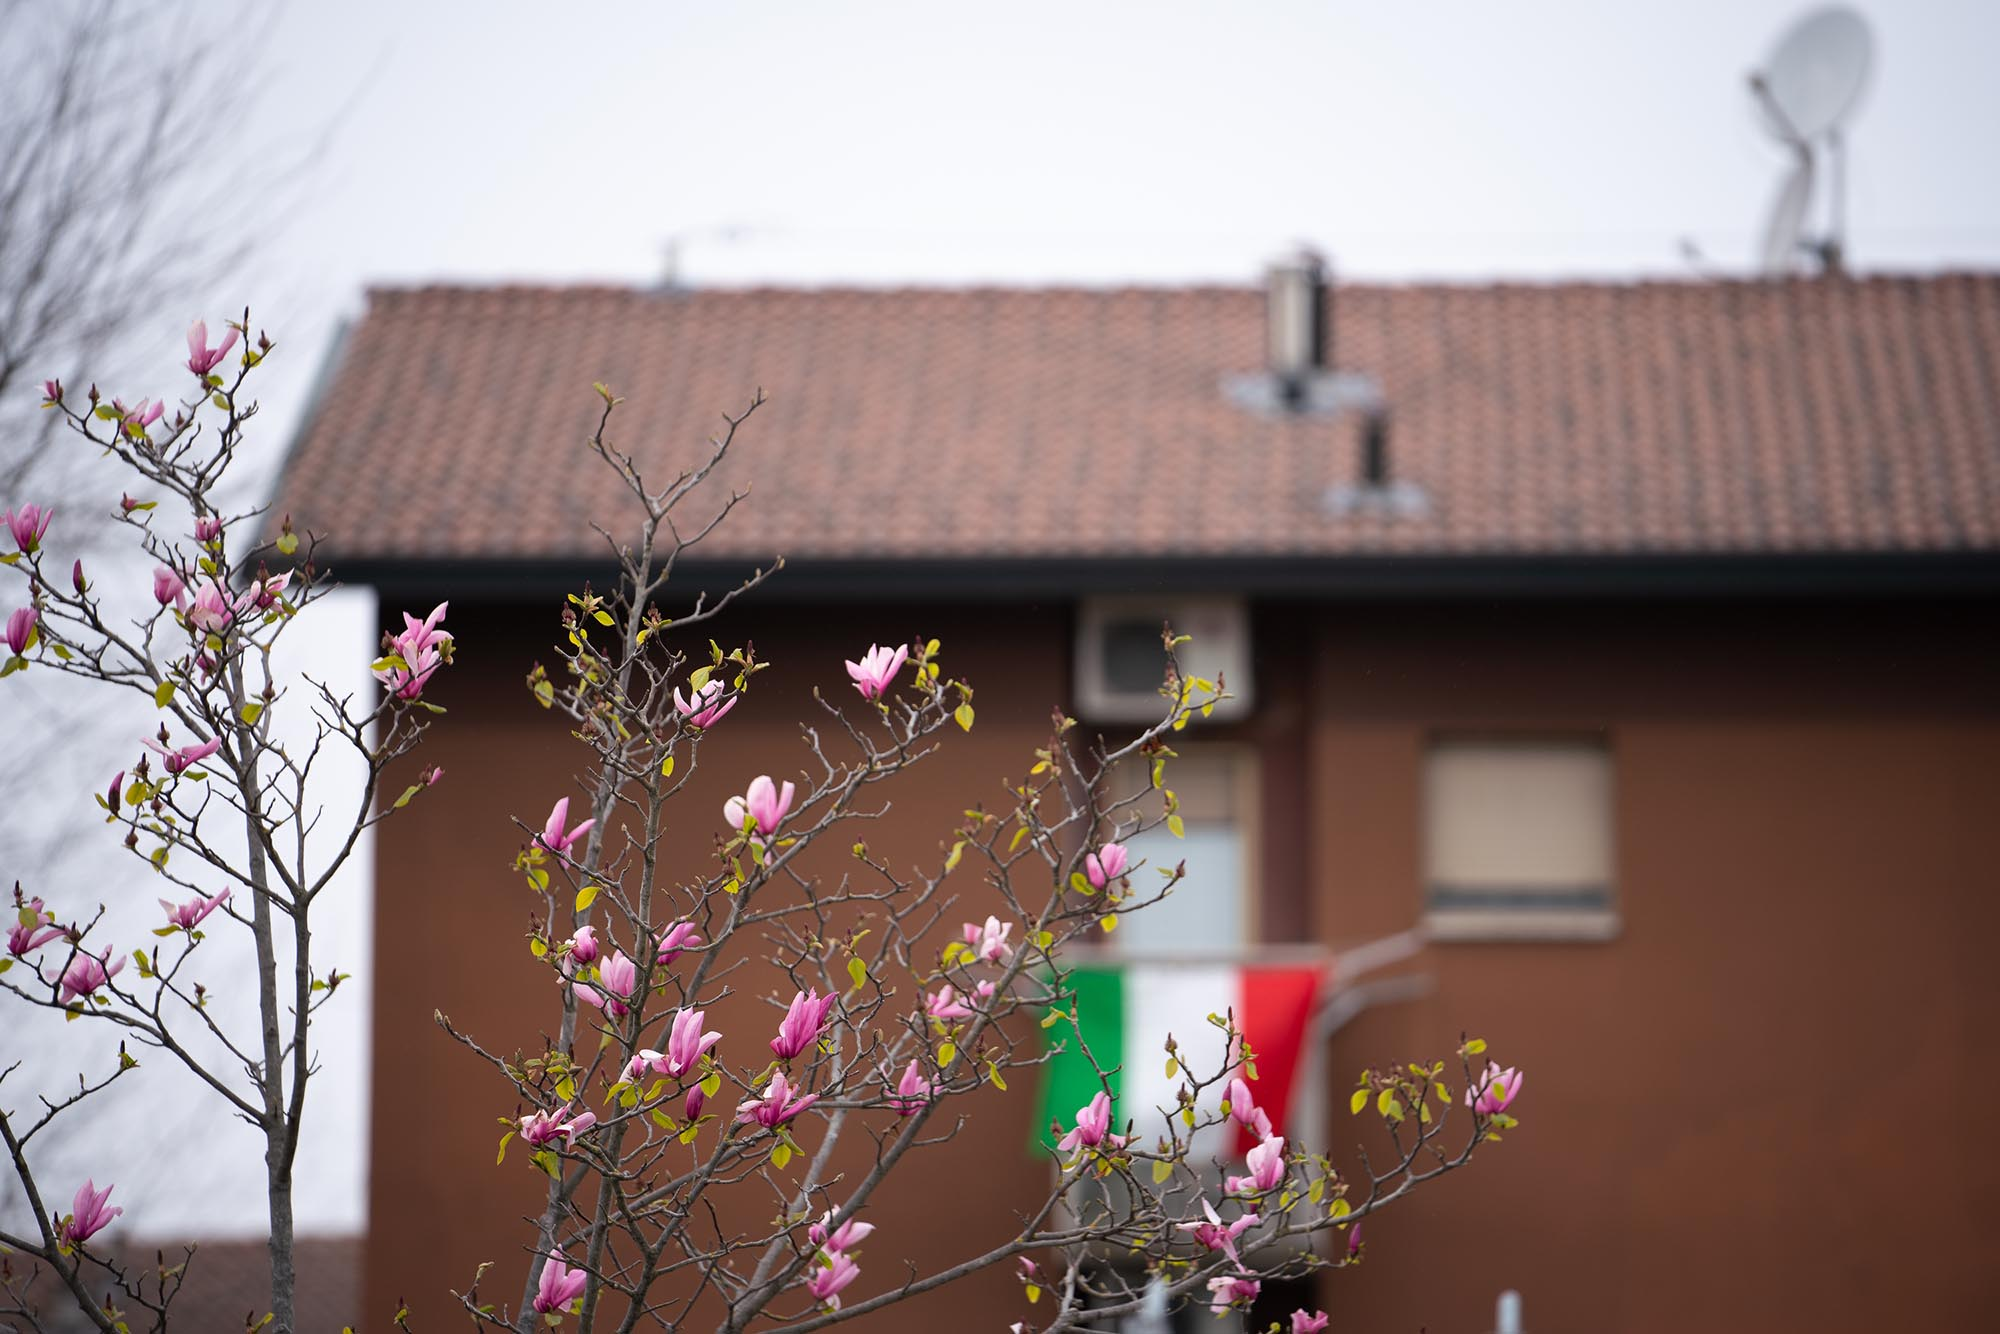 Spring blossoms invoke a sense of hope near the SP field hospital for COVID-19 patients in Cremona, Italy..